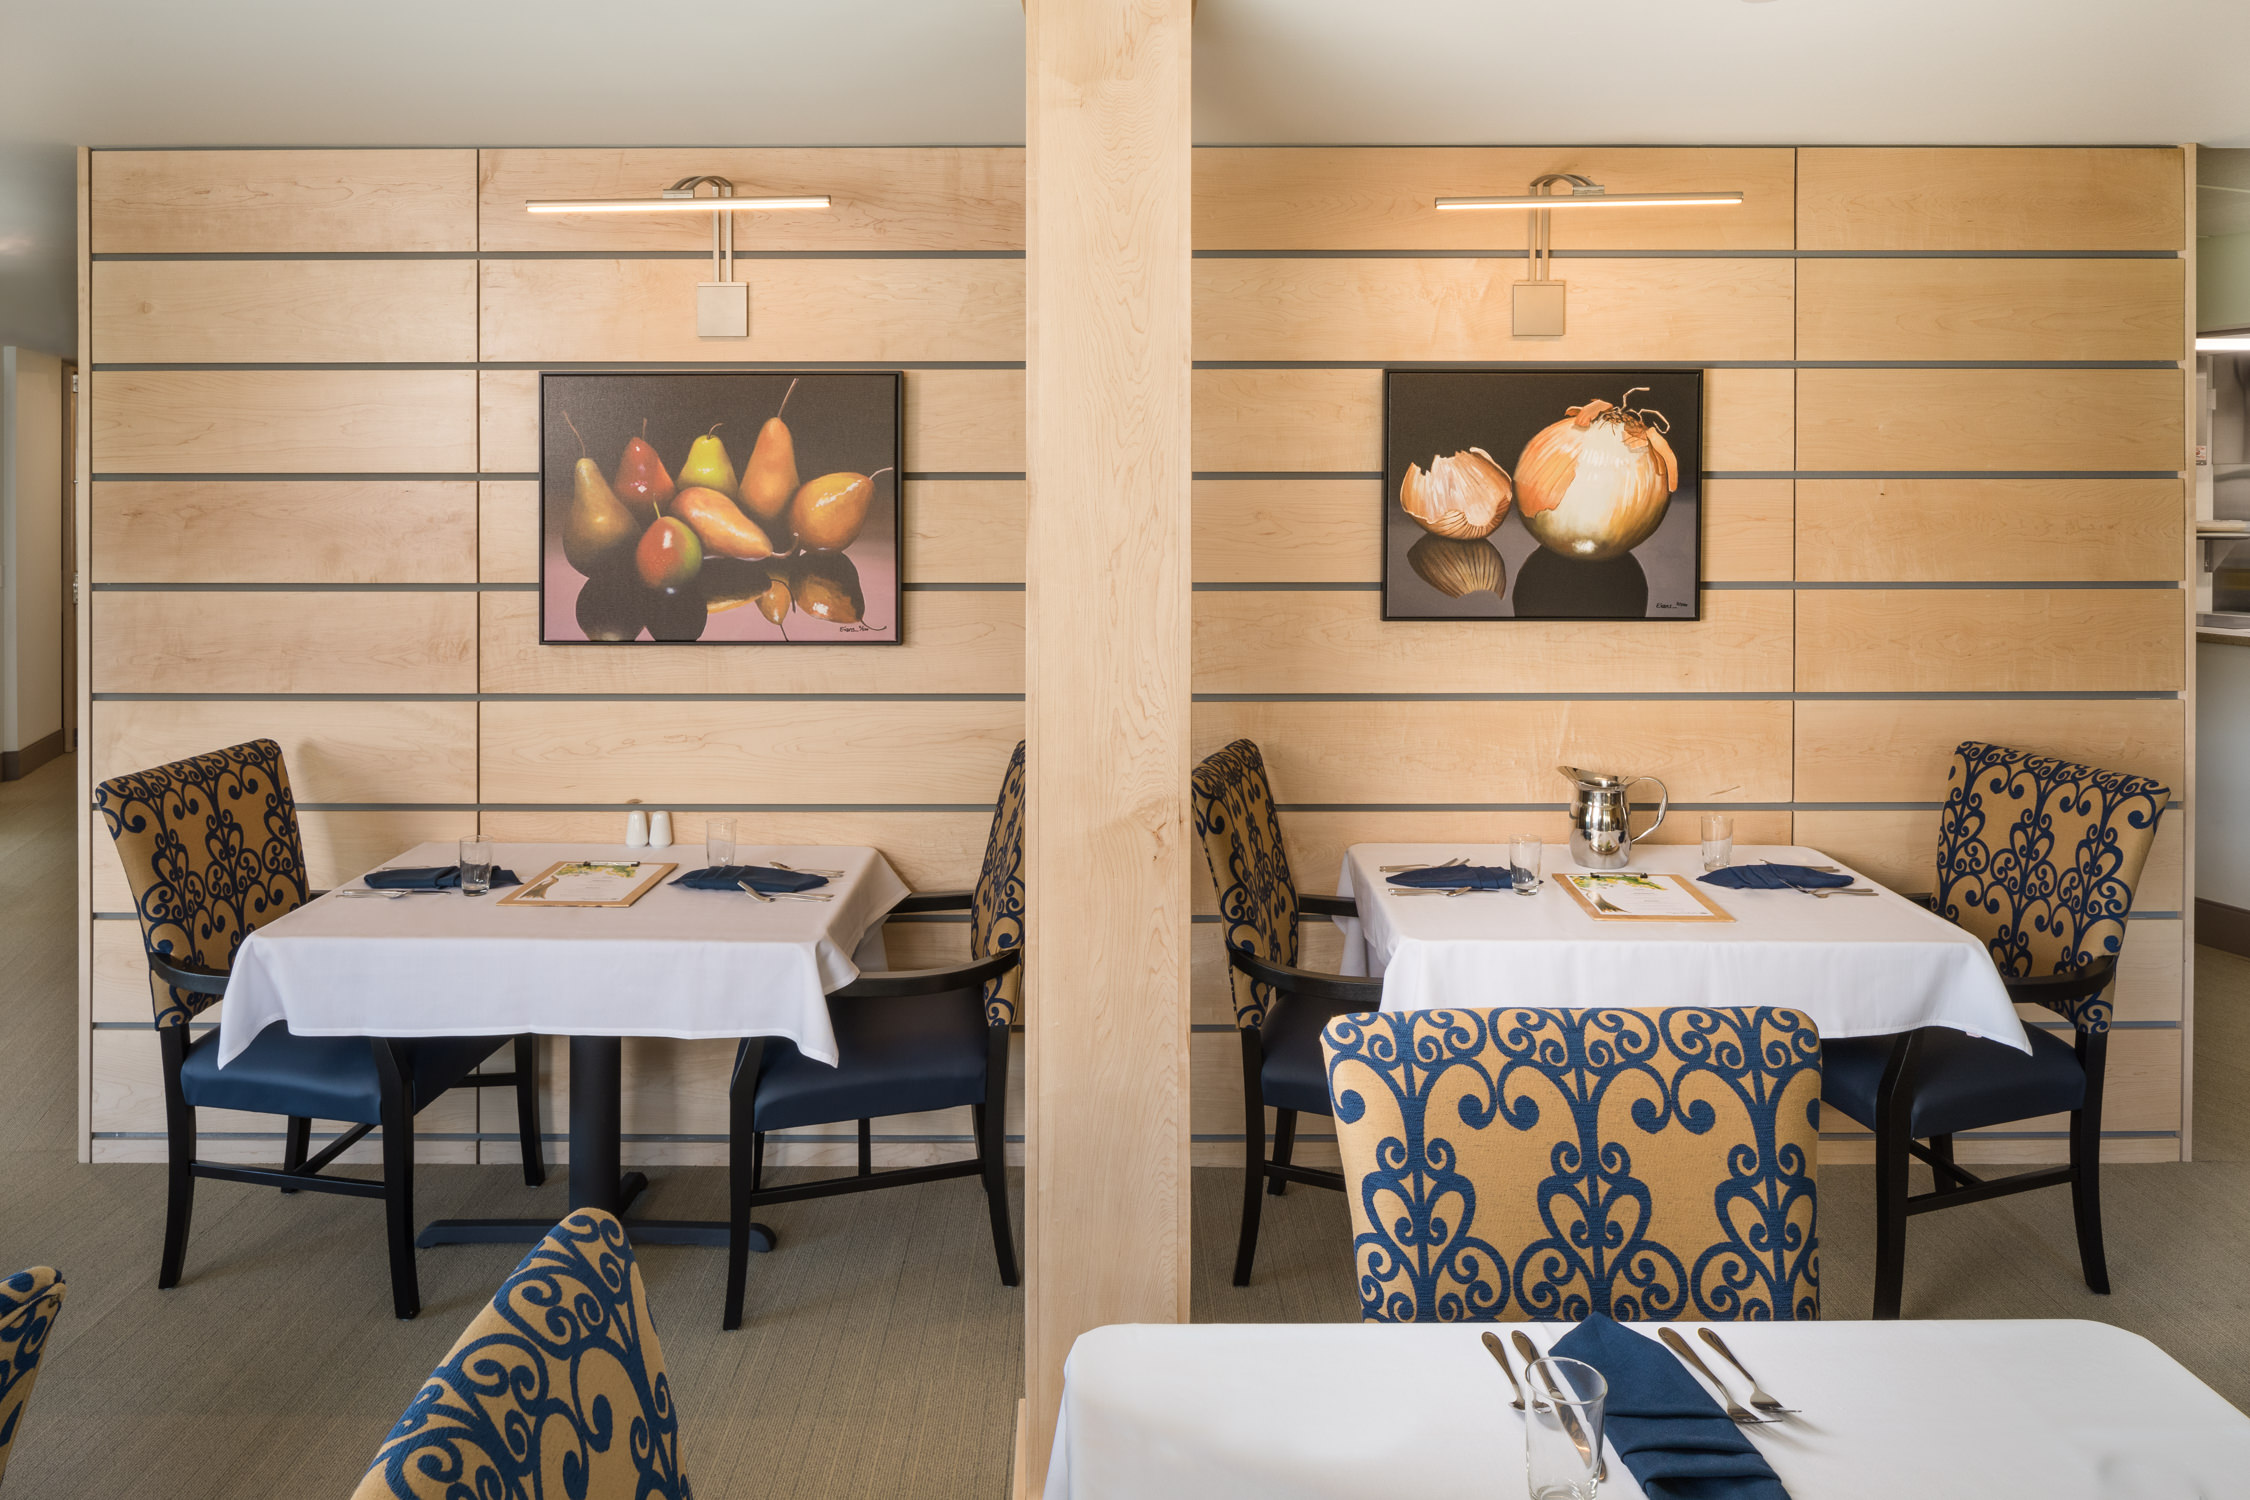 A photo by Stina Booth of tables set against the wood slatted art wall in the main dining room of the Strode Independent Living facility in Randolph Vermont